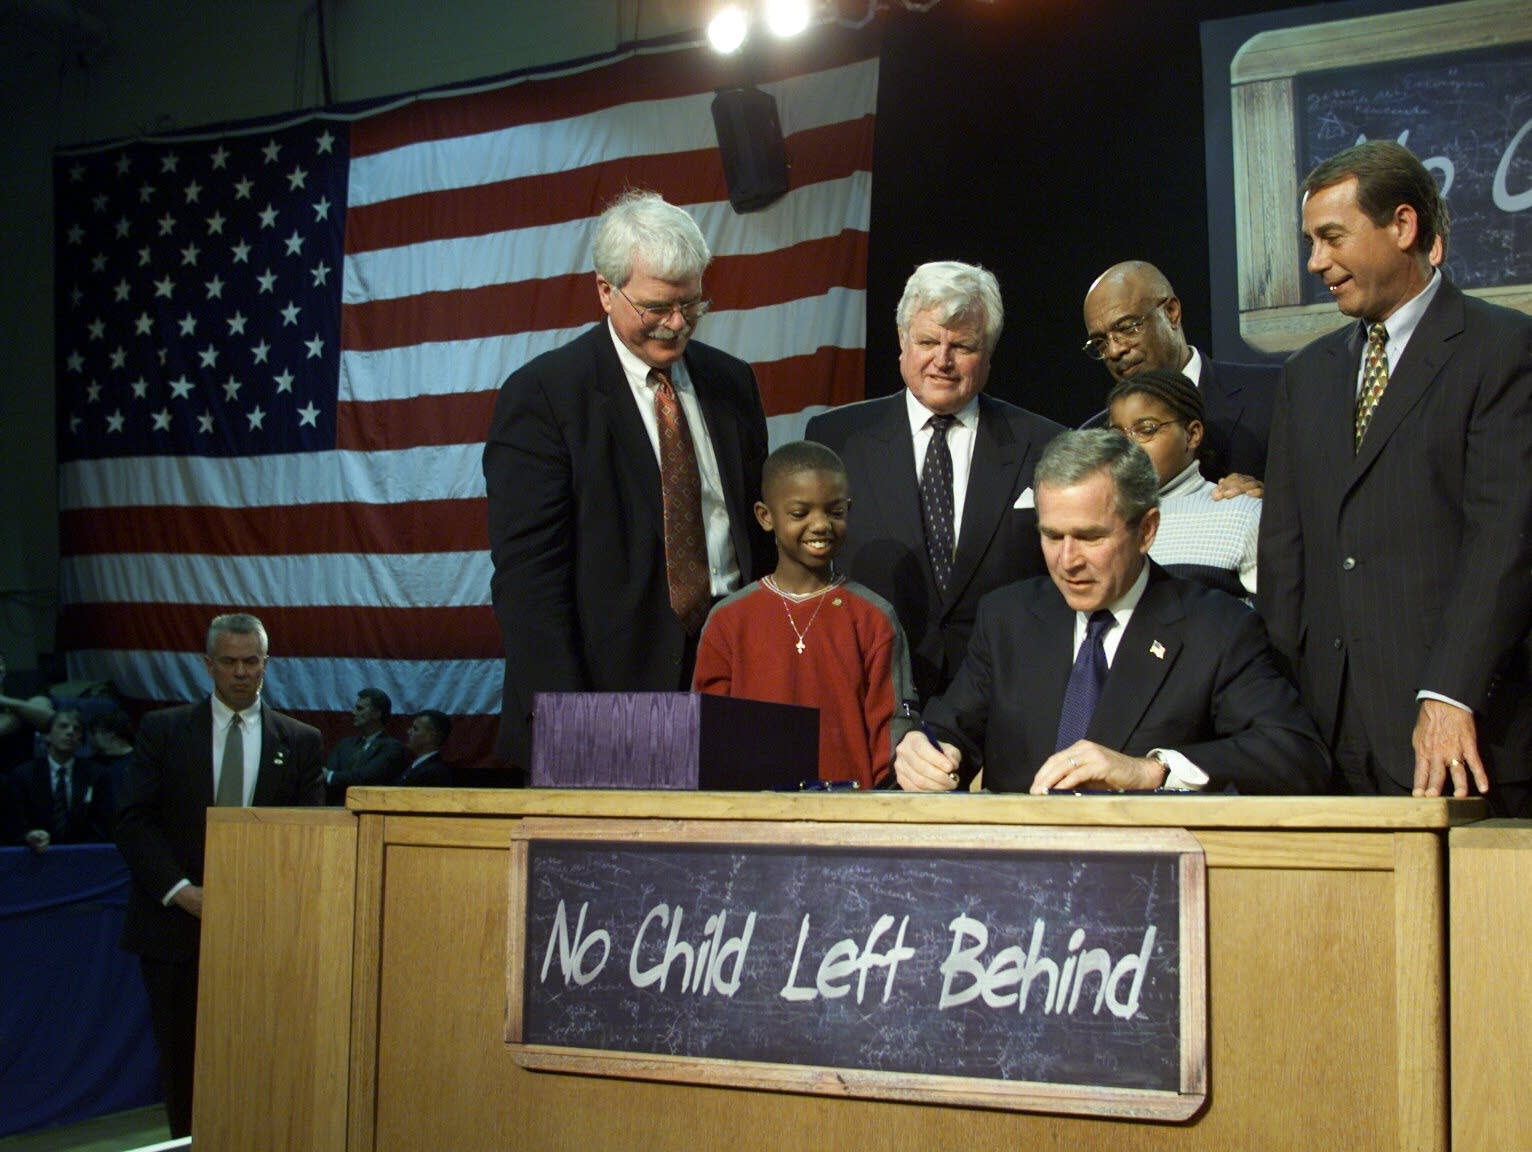 Bush signs No Child Left Behind Act